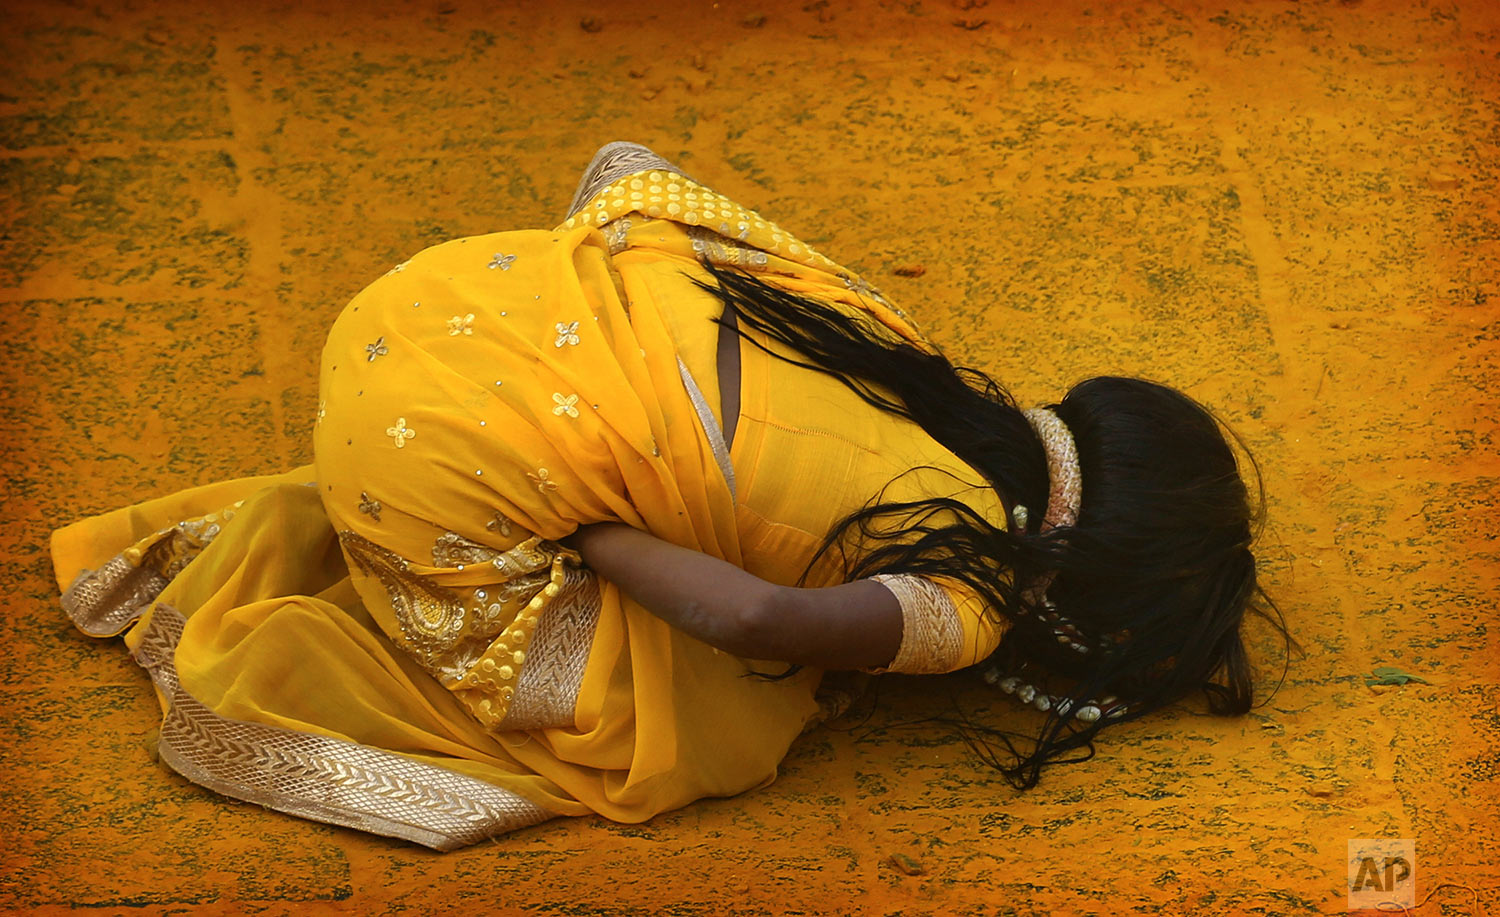 A devotee covered in the spice turmeric goes into a trance during the celebration of the Bhandara Festival, or the Festival of Turmeric, at the Jejuri temple in Pune district, Maharashtra state, India, Monday, June 3, 2019. (AP Photo/Rafiq Maqbool)